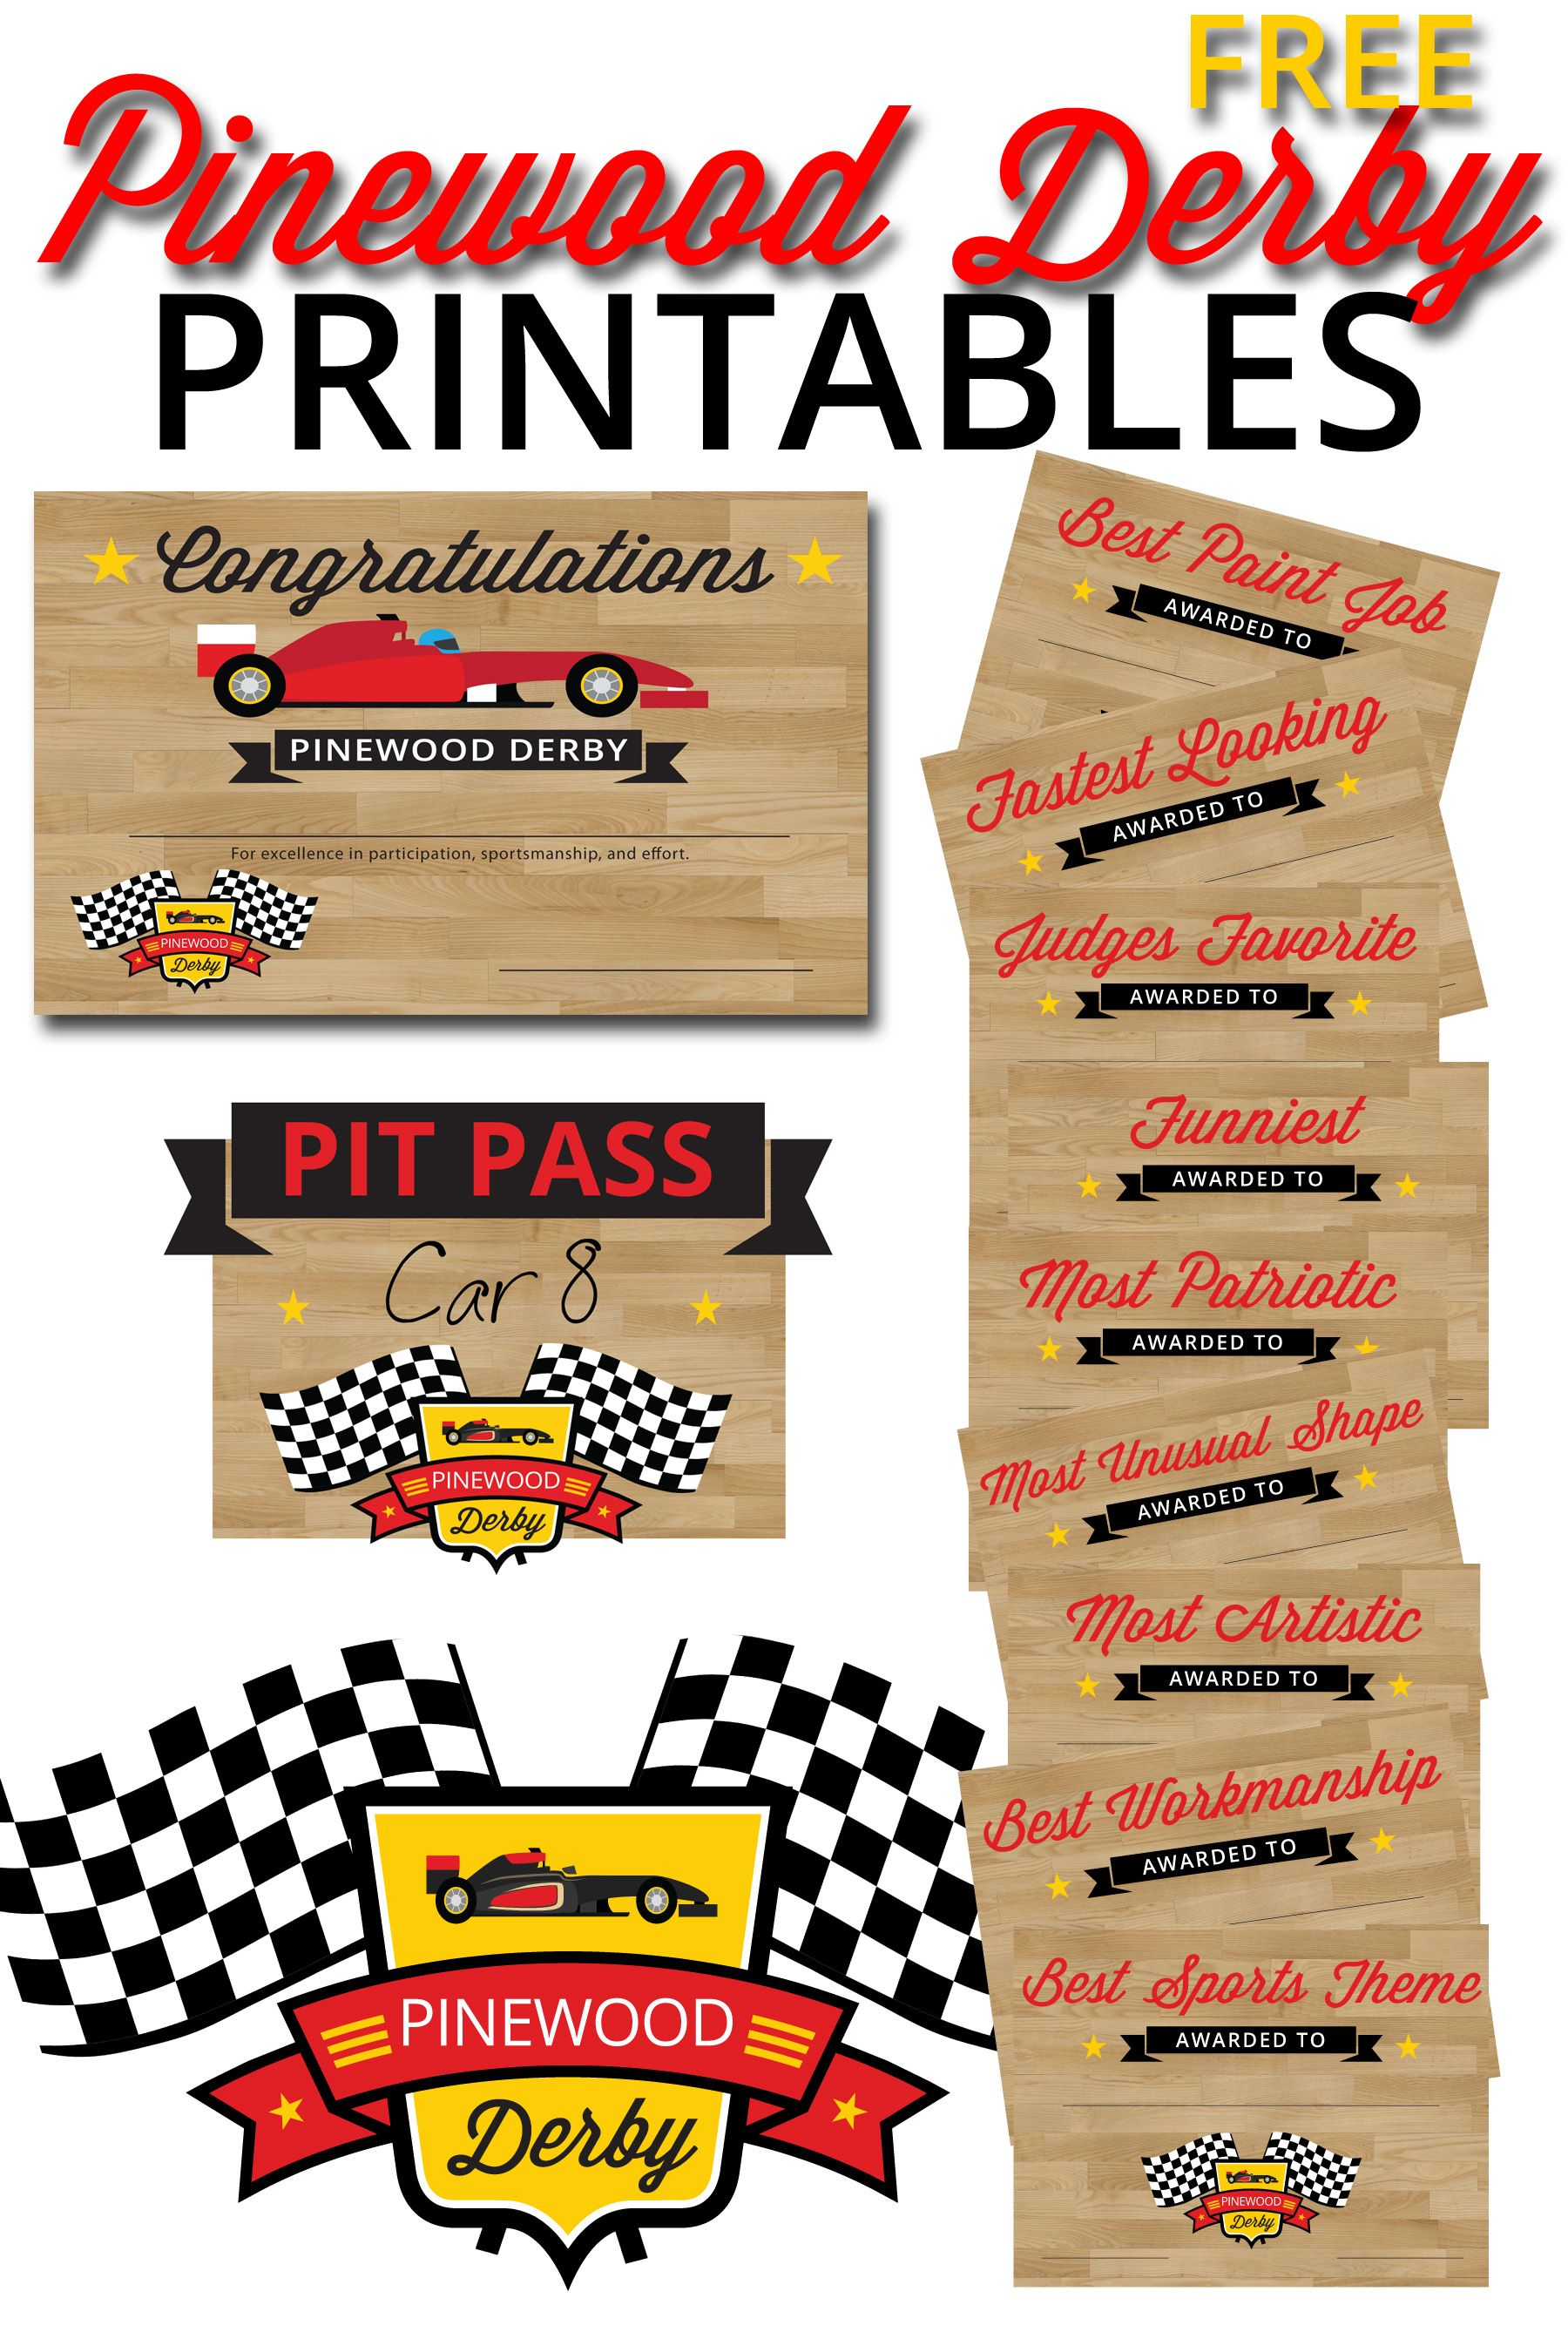 Free Pinewood Derby Printables | Cub Scouts | Pinterest | Pino ...